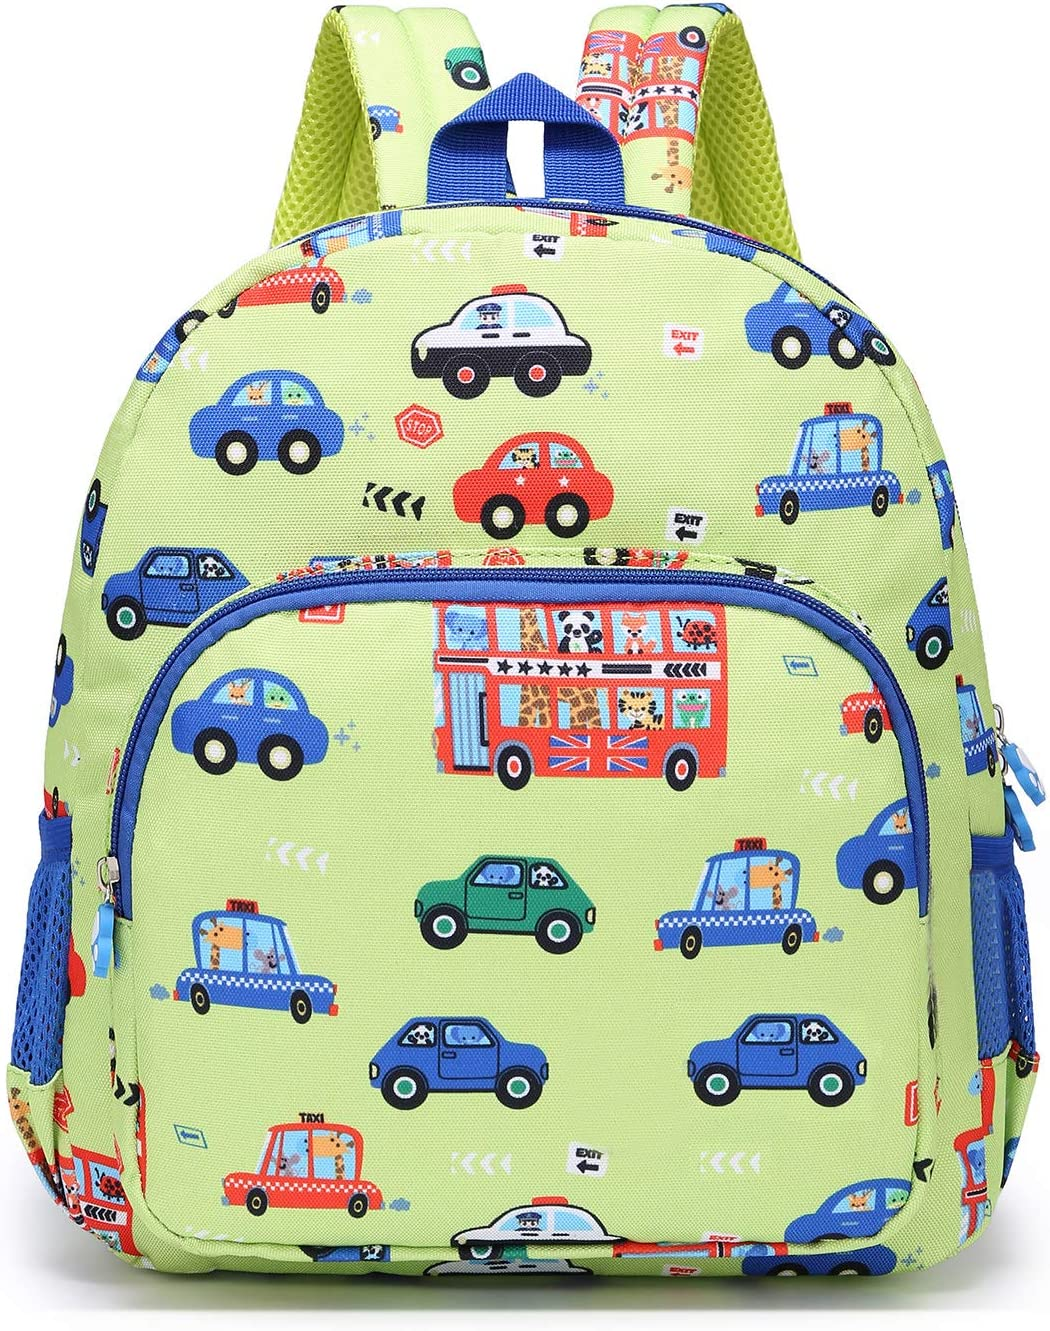 Willikiva Little Childrens Toddler Bags Cute Bus kids Backpack for Kids Boys and Girls to Travel School Backpack (Green)